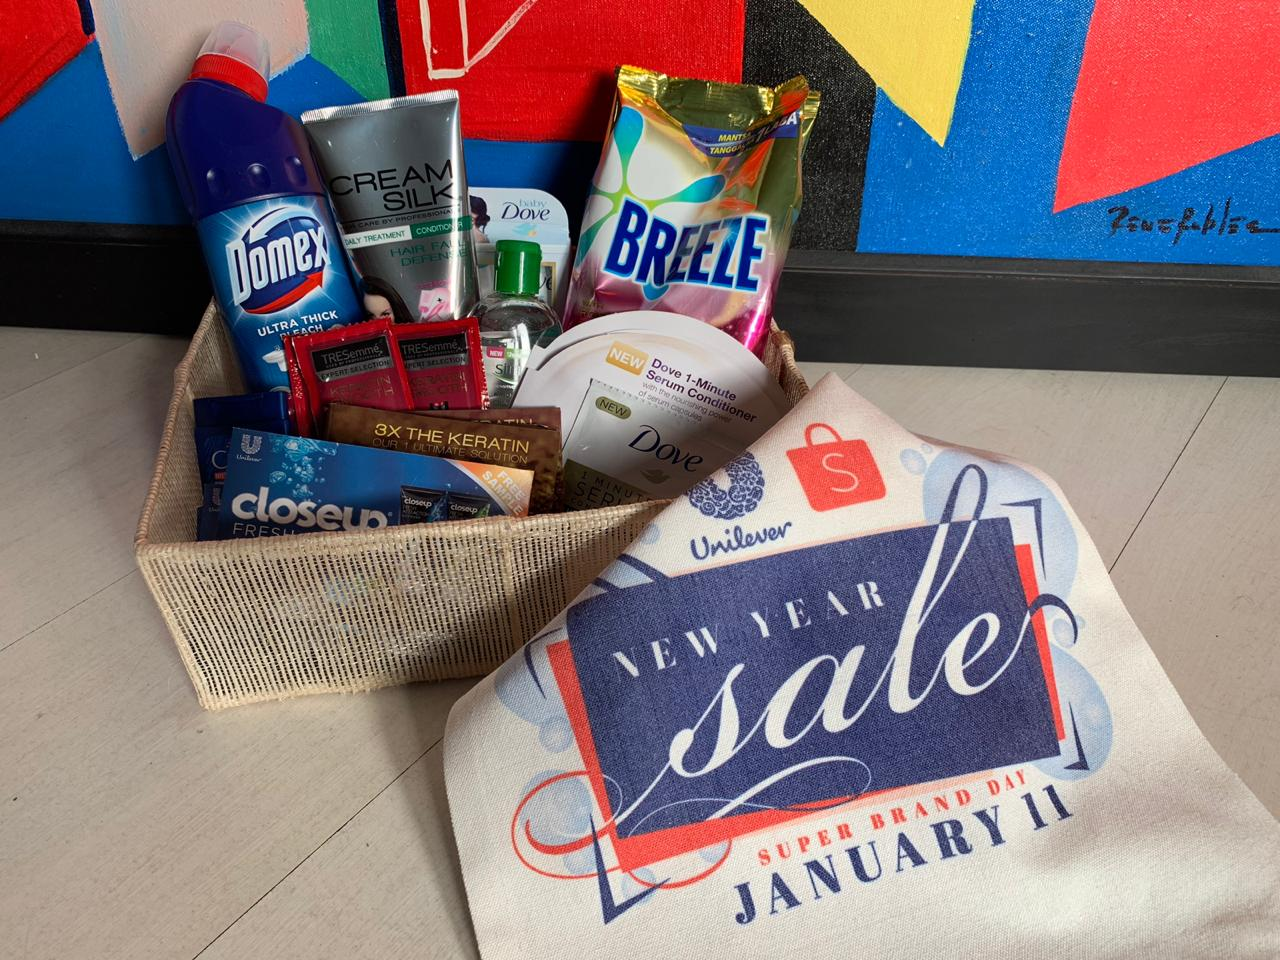 Start Your Year Right By Grabbing The Awesome Deals From Unilever's New Year Sale